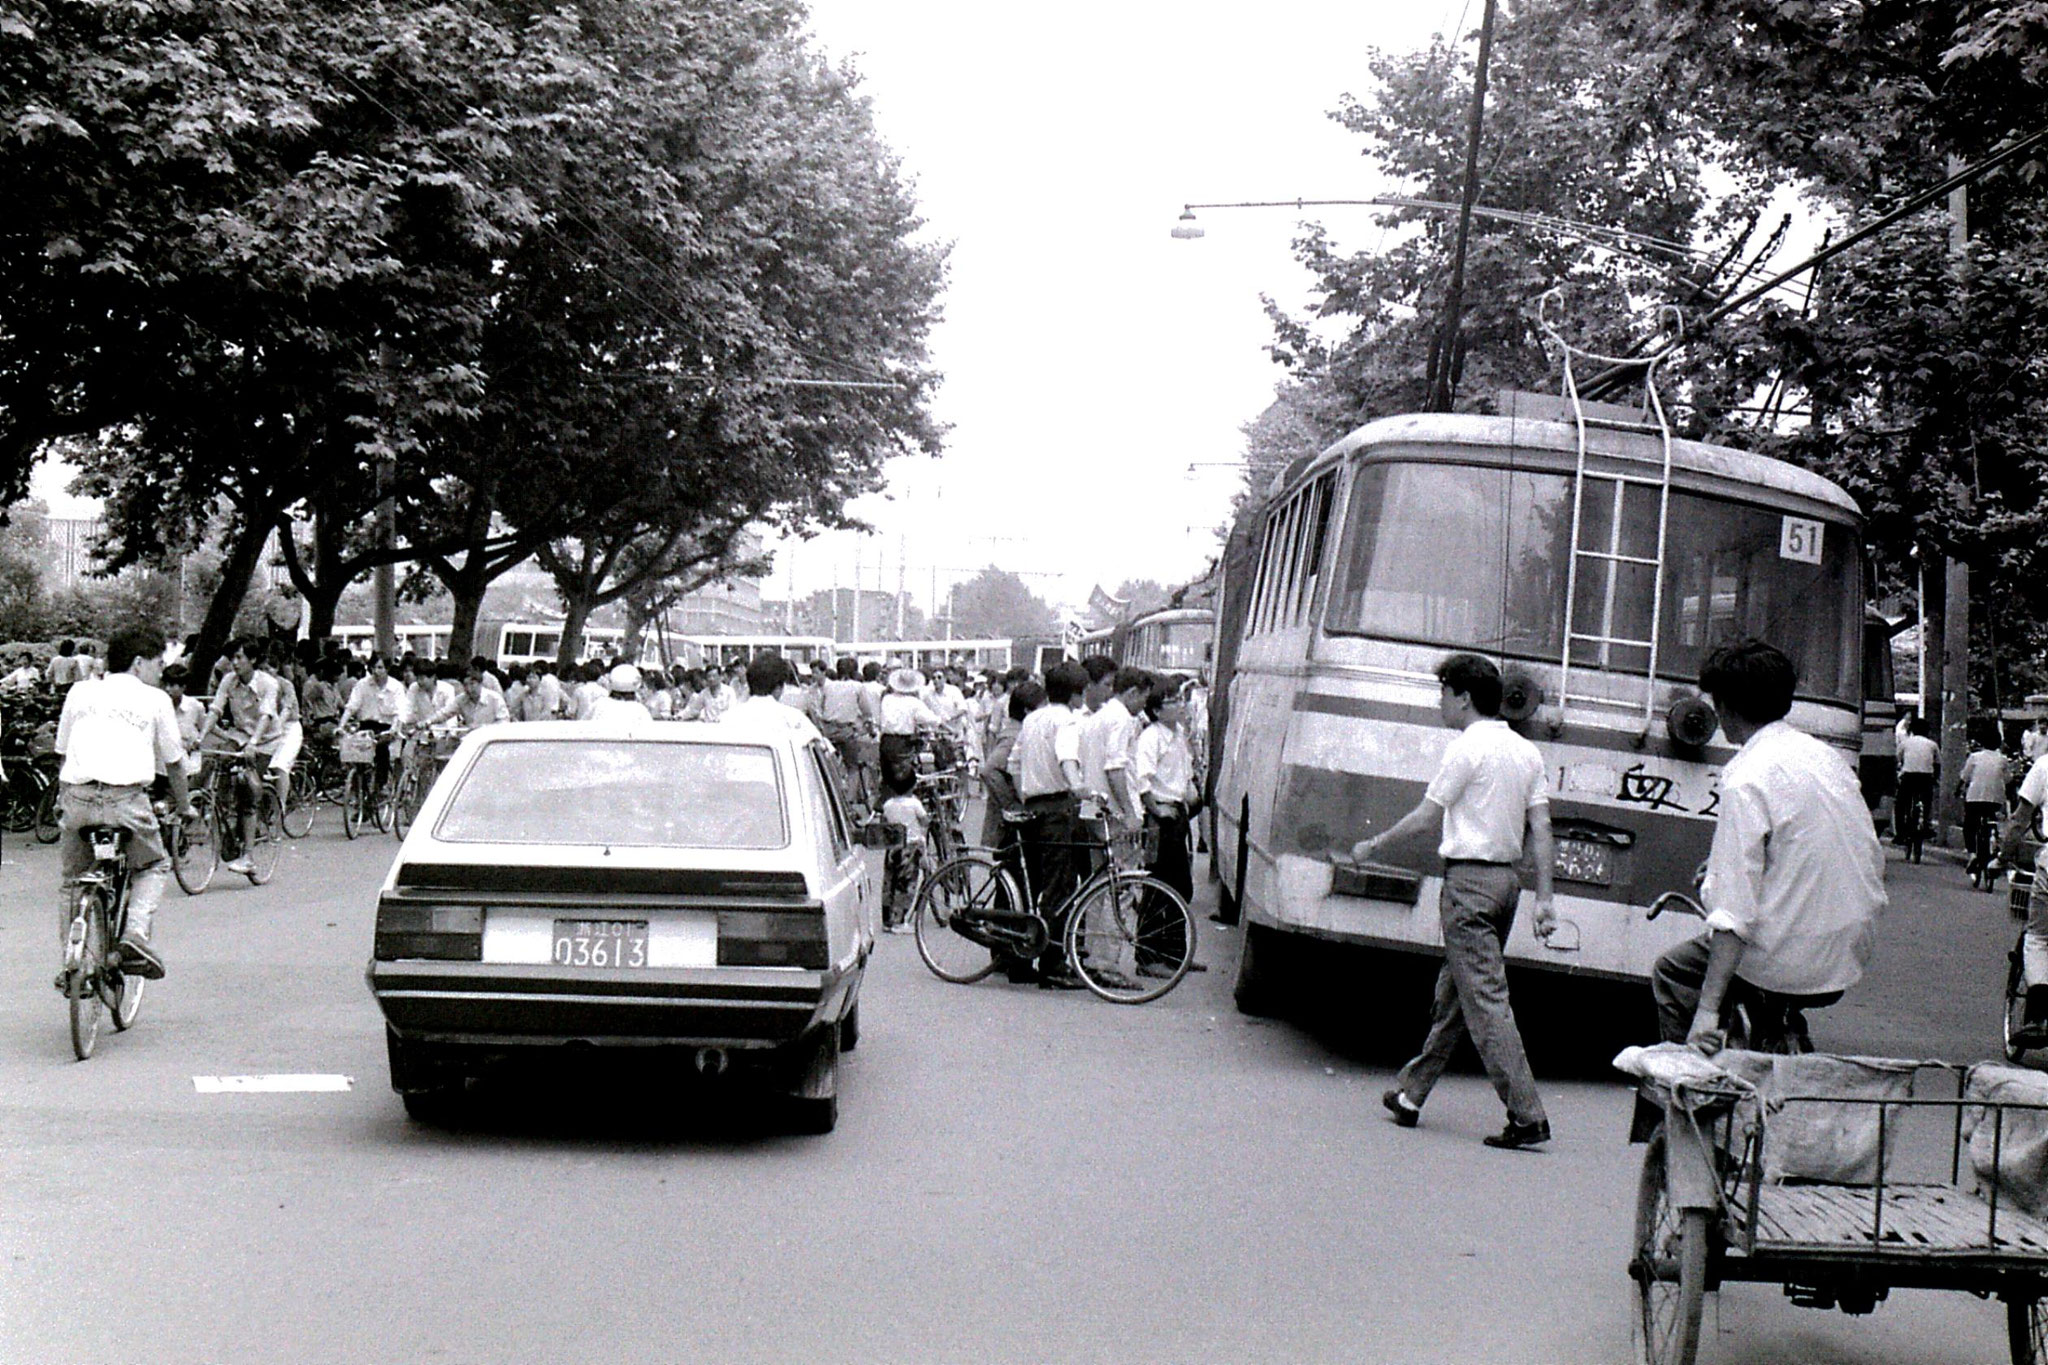 6/6/1989: 26: demonstrations around Hangzhou